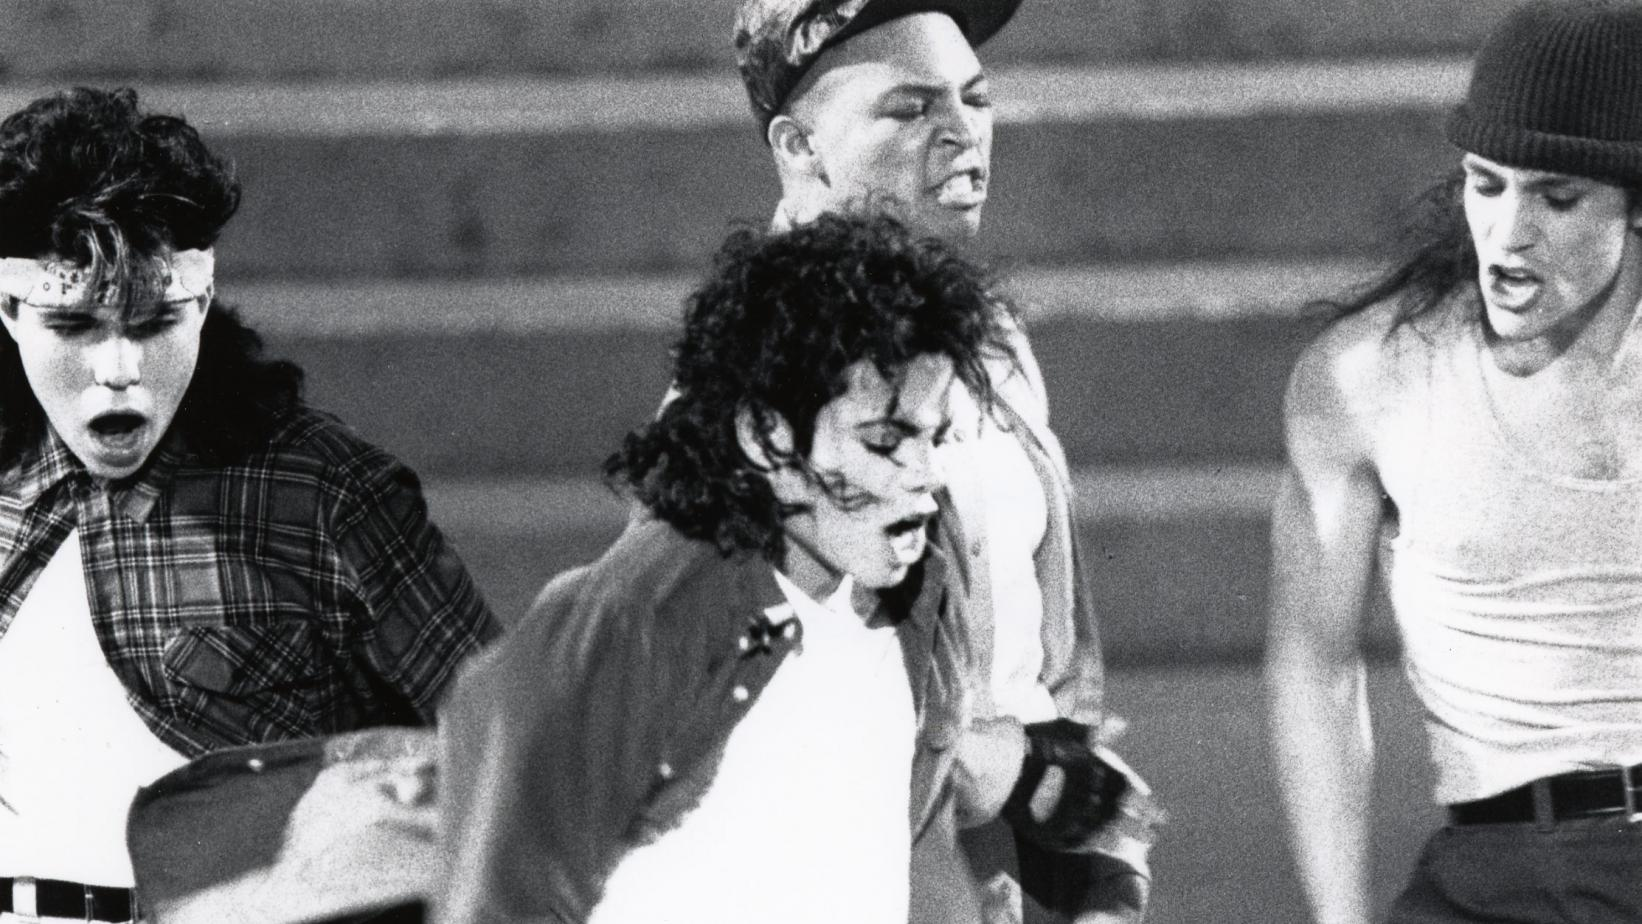 Michael Jackson performs at the 30th Annual GRAMMY Awards in 1988